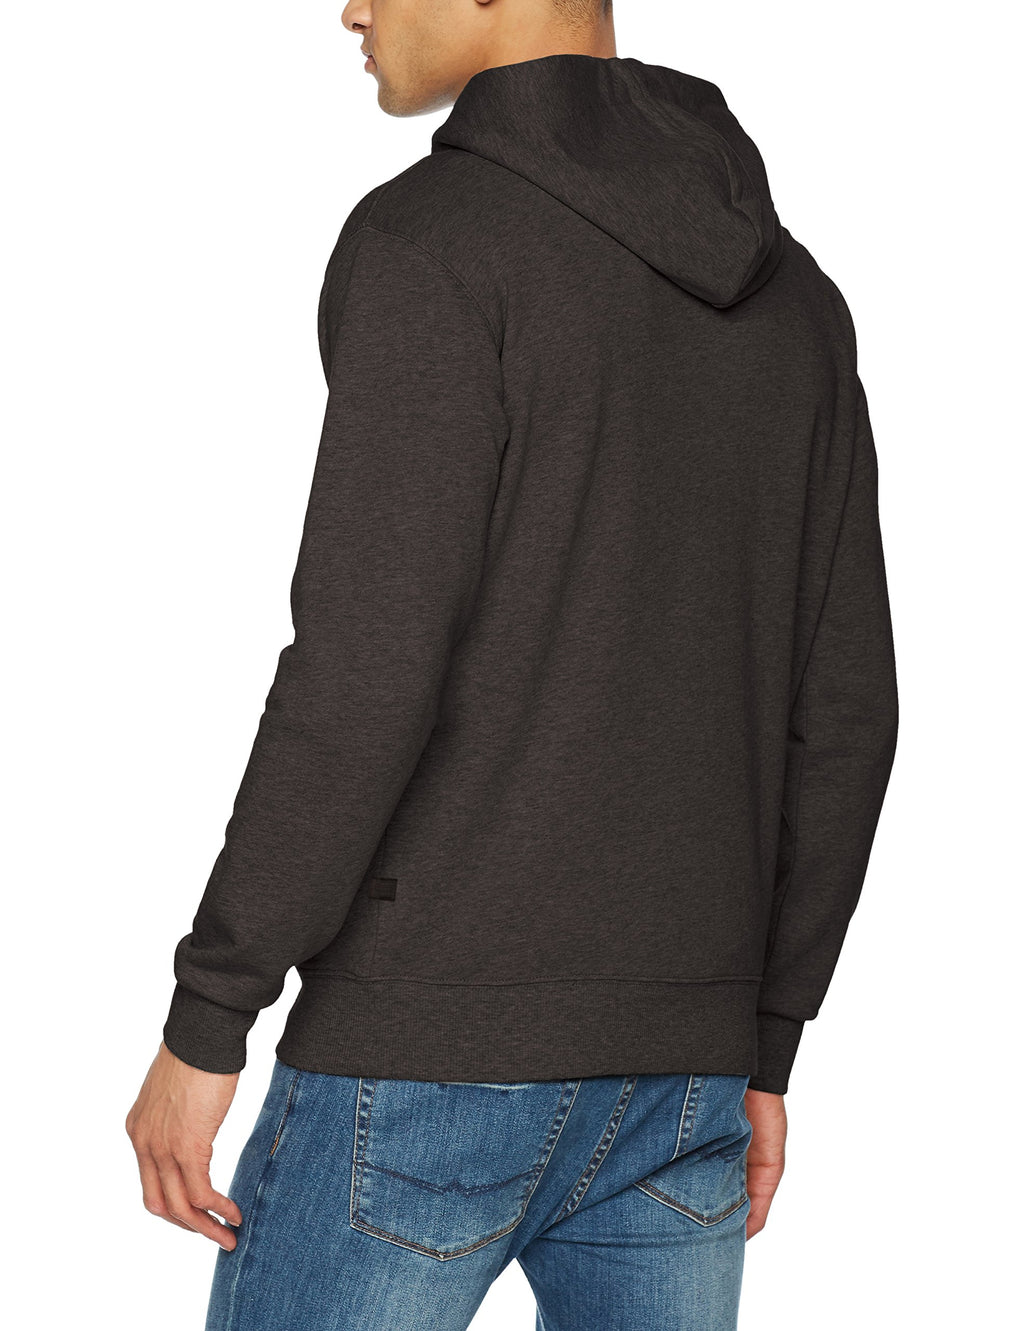 G-STAR RAW Loaq Hoodie Men | Dark Black Heather (D08478-9842-7293)